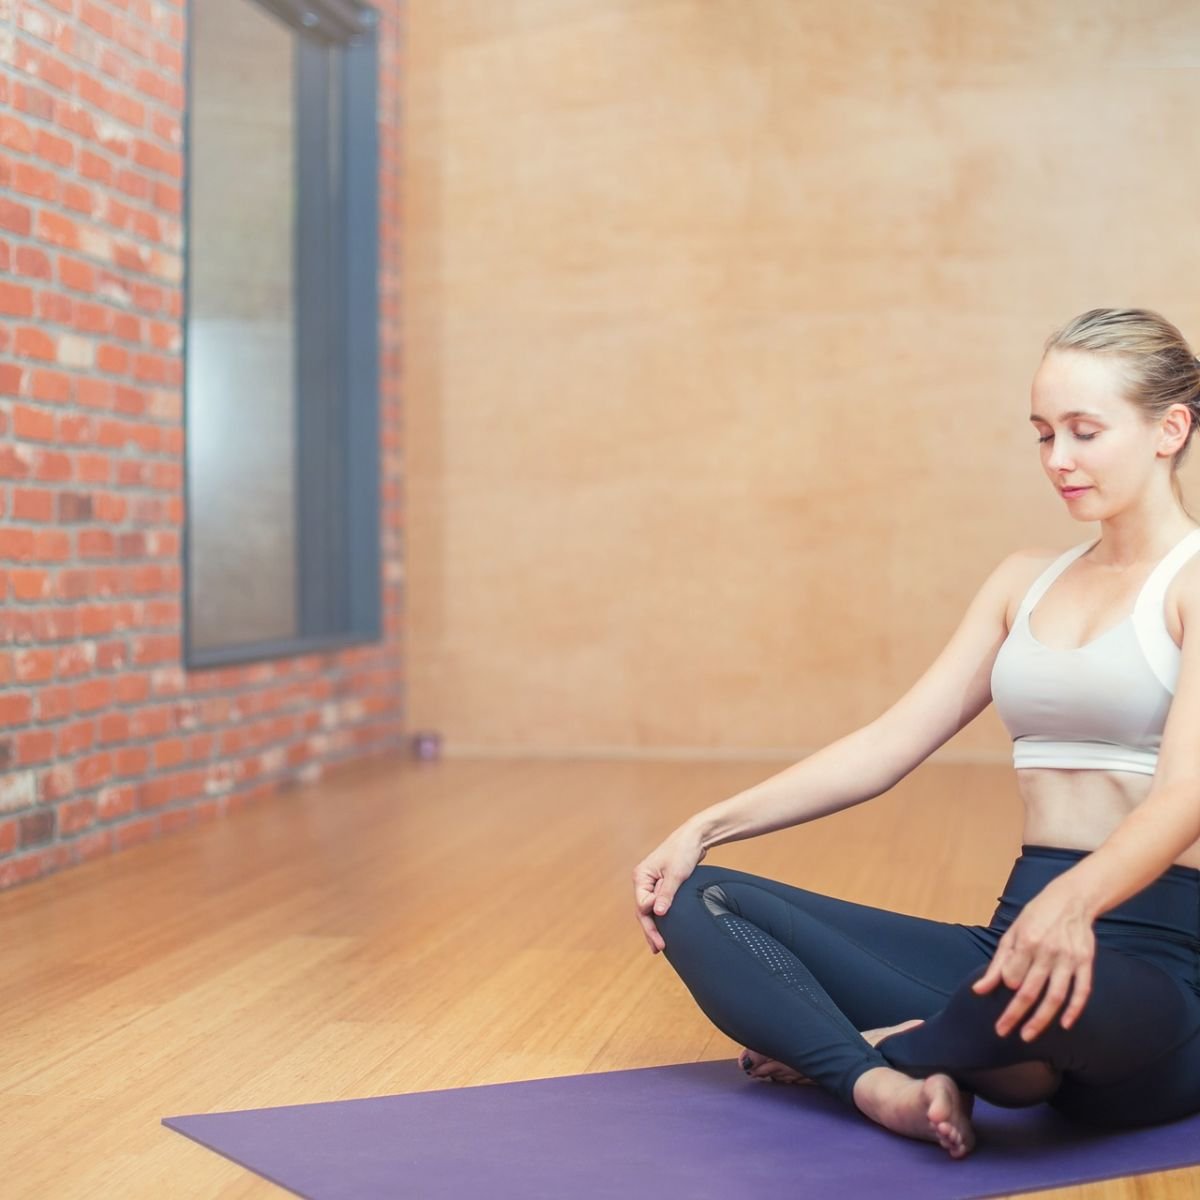 Woman on yoga mat. Meditating.